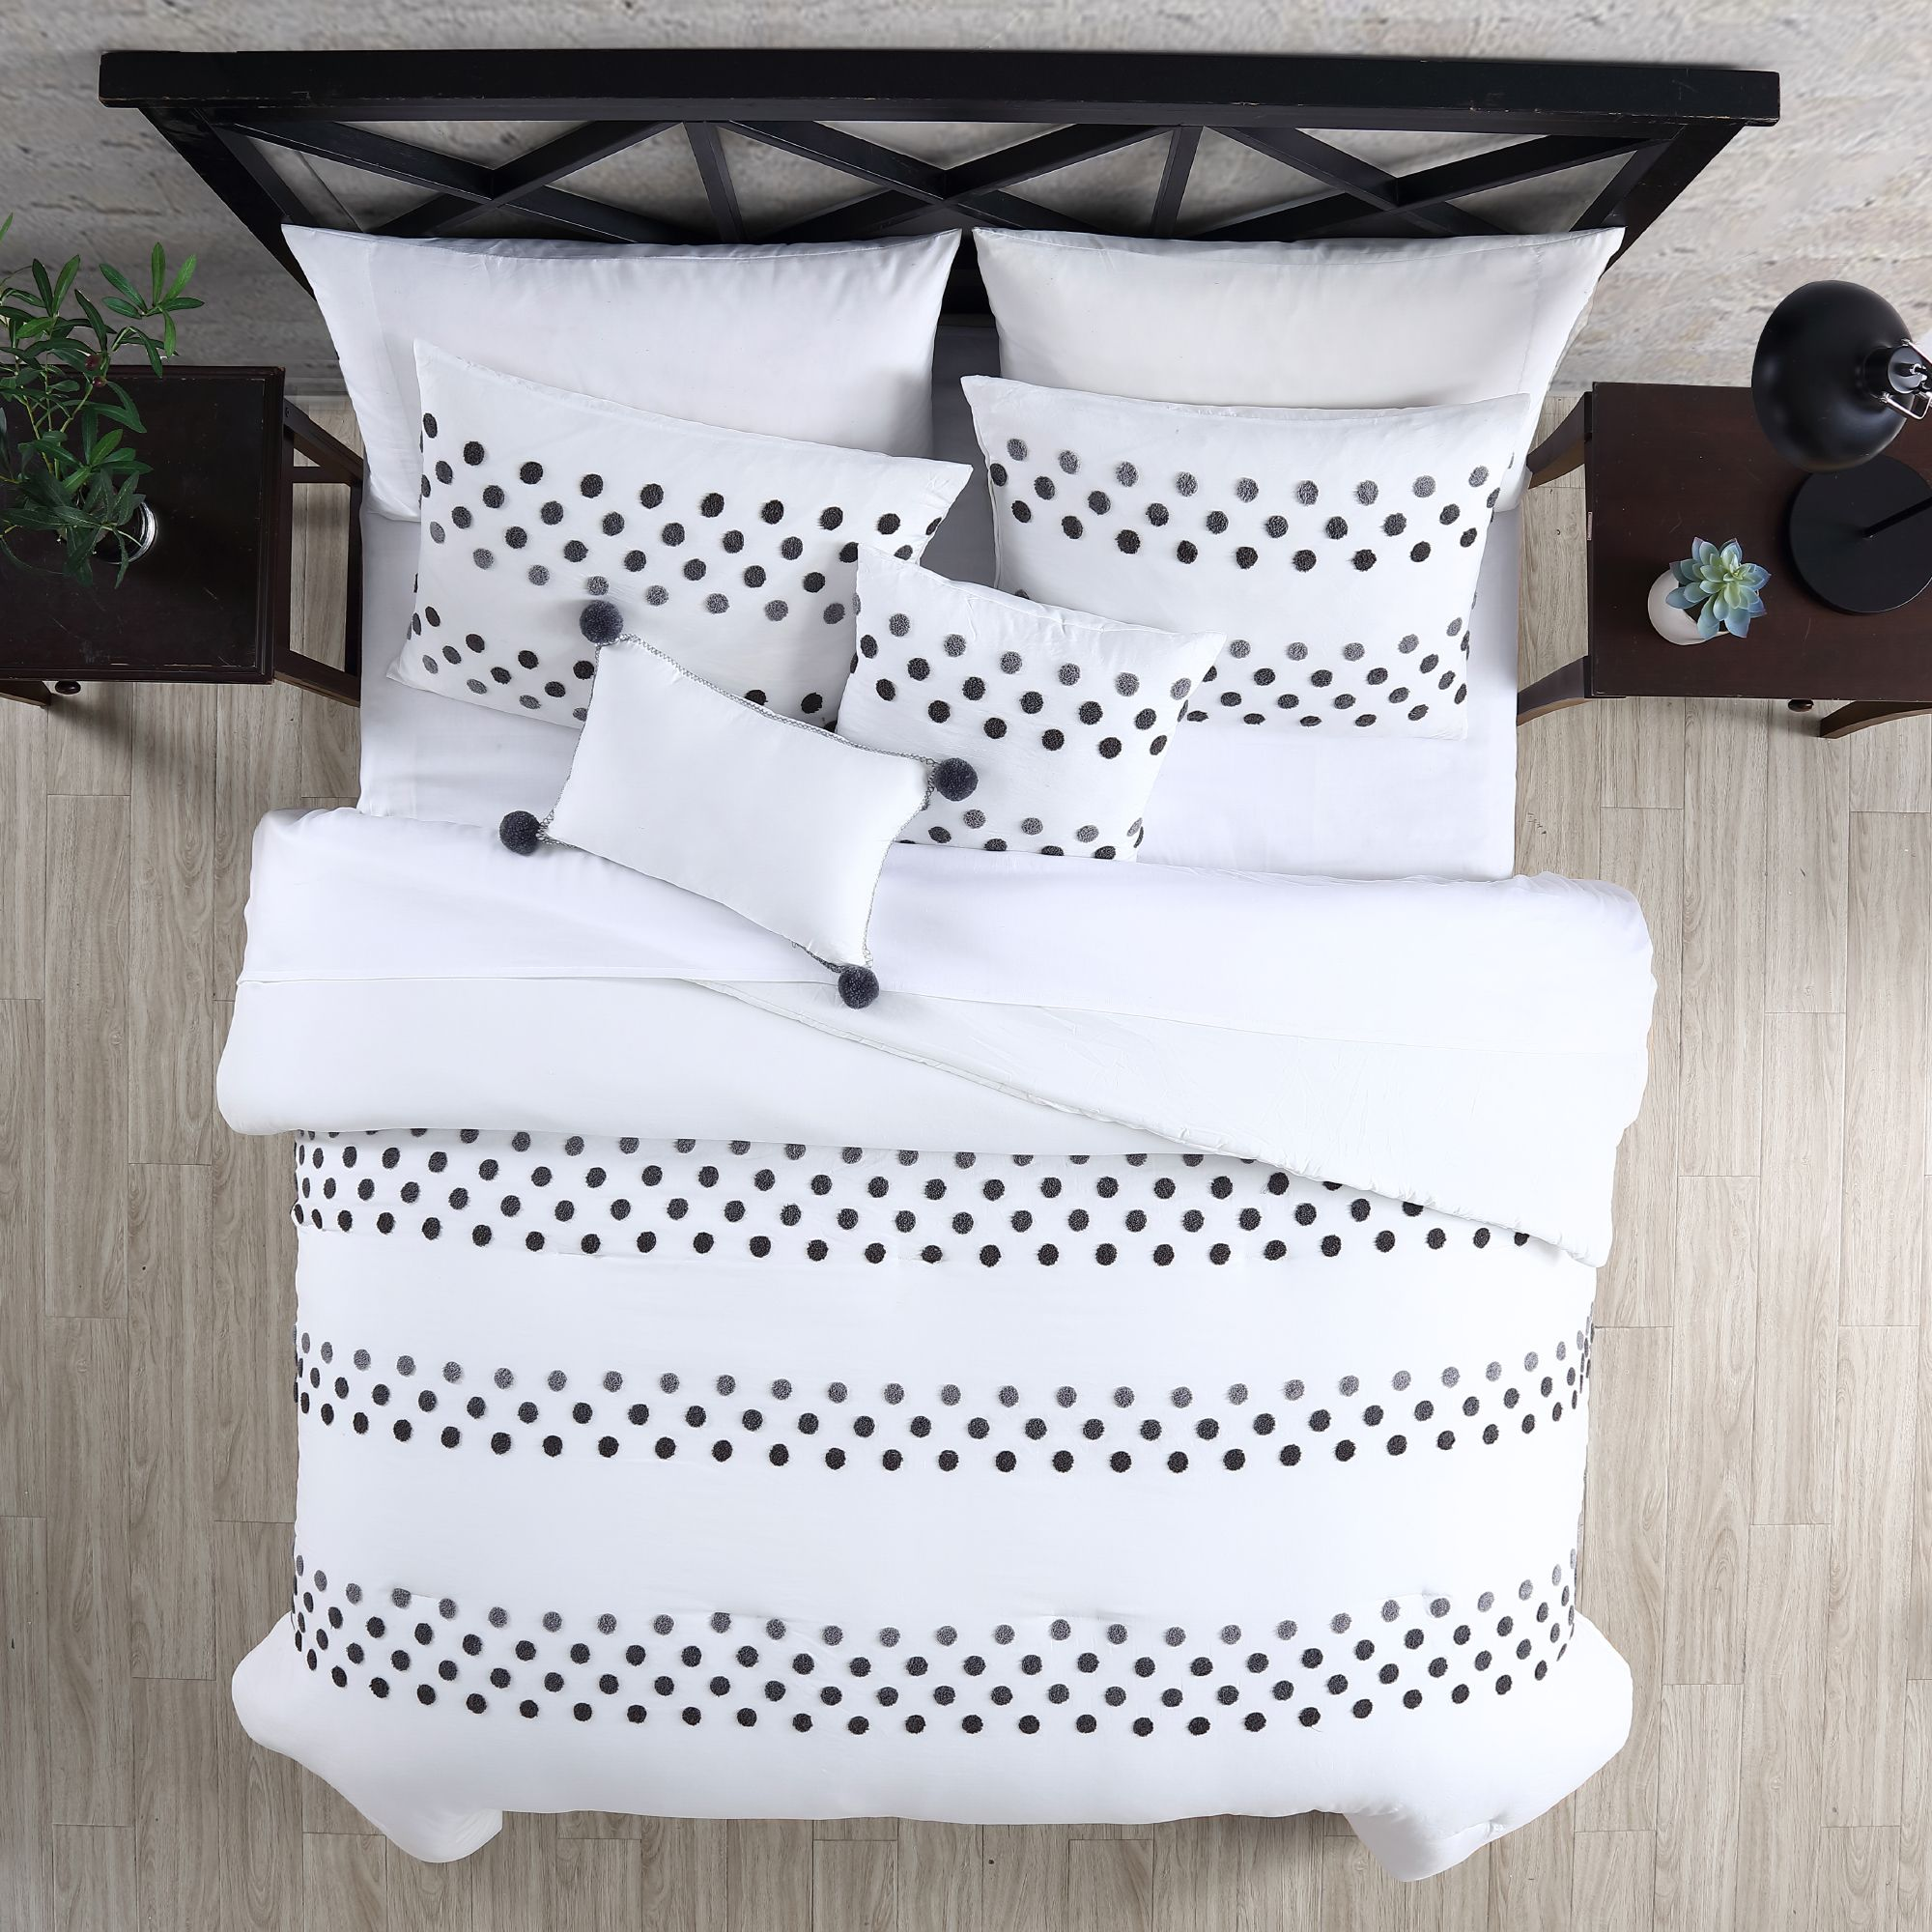 Mia - 5 Piece Comforter Set $140.00